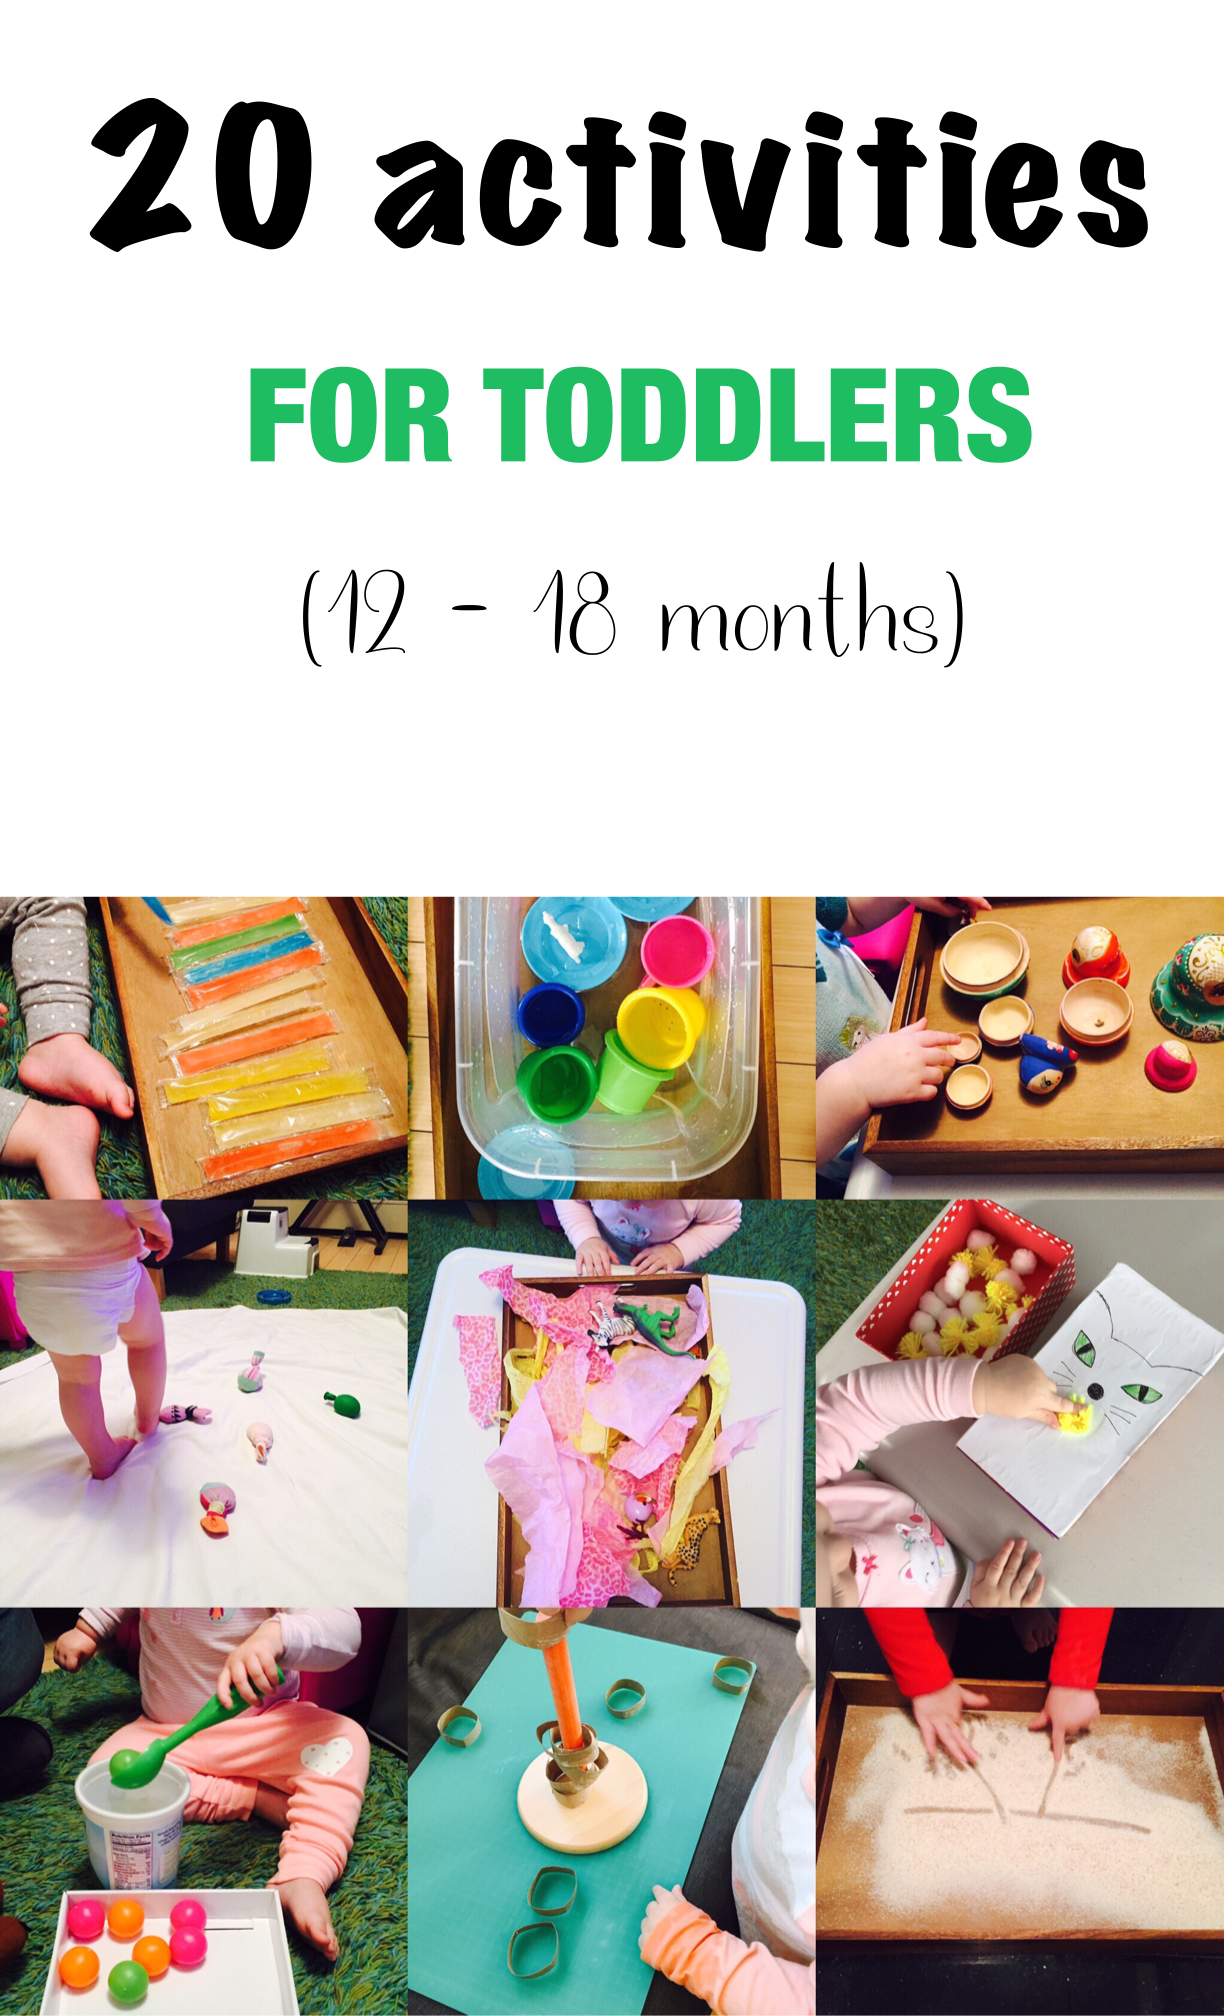 43+ Crafts for 18 months old to do ideas in 2021